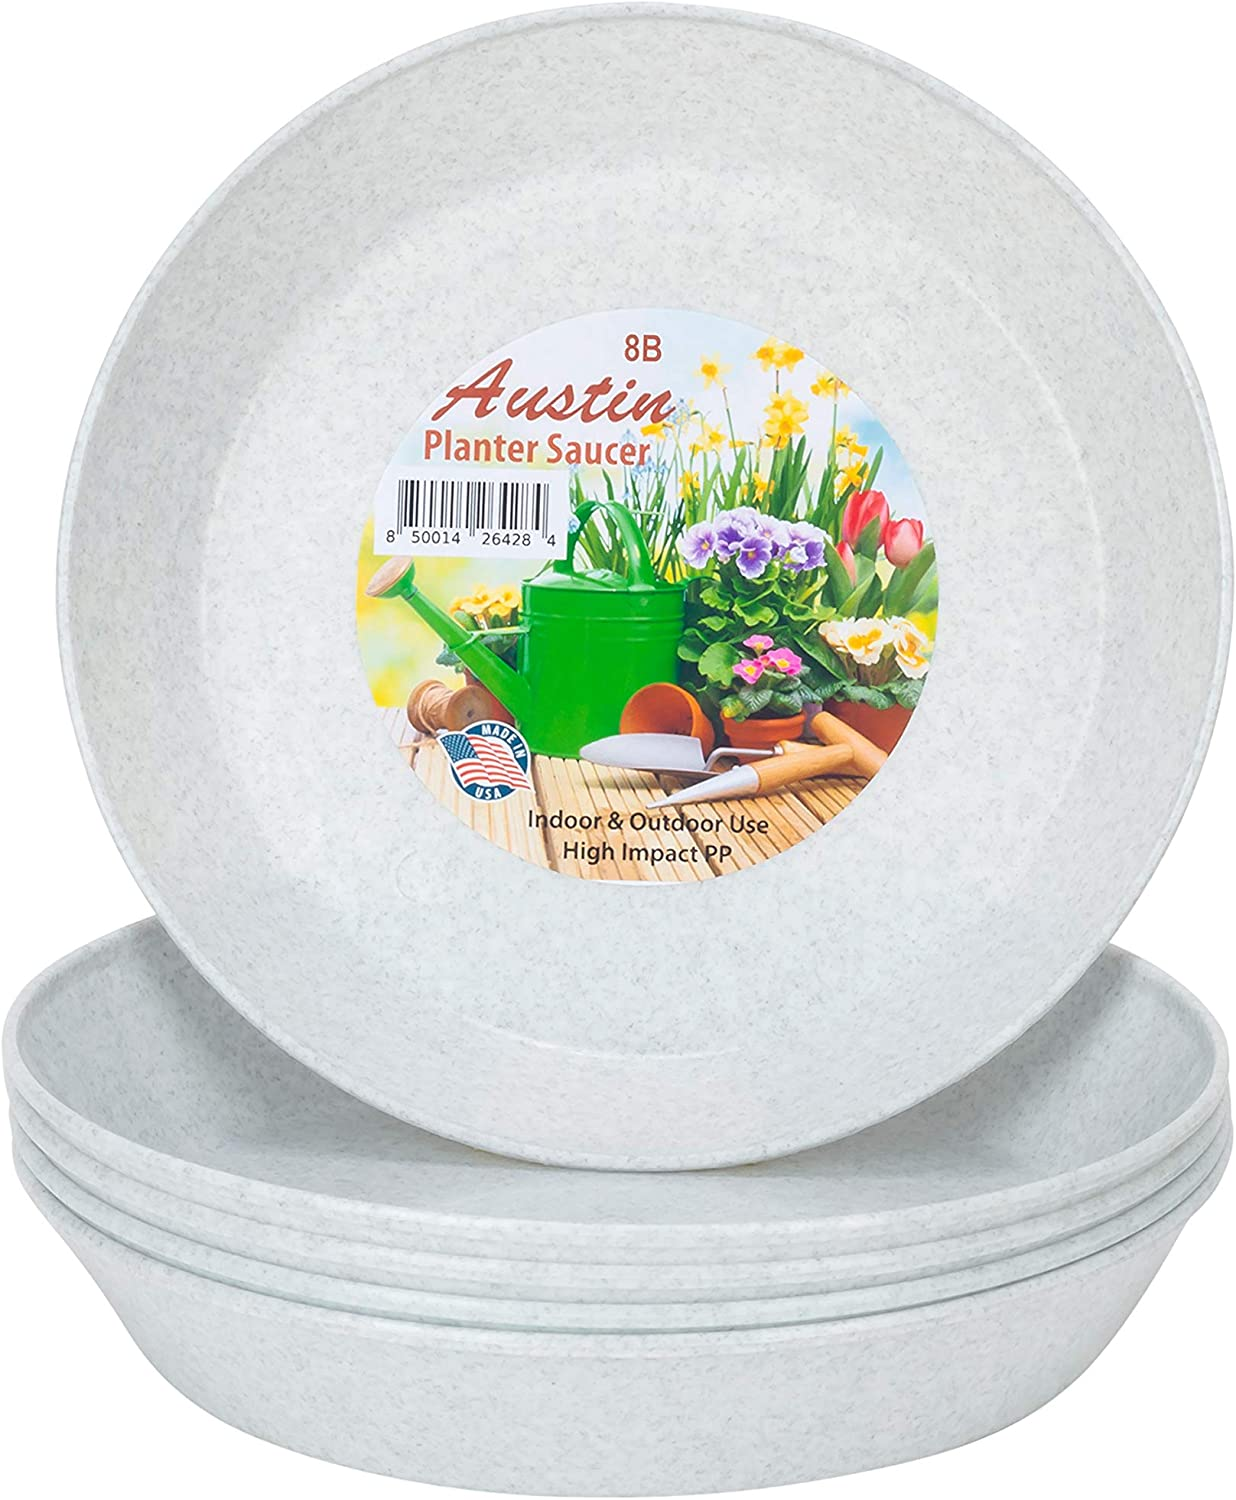 AS18 (16.3 inch Base Dia.) Case of 5 Austin Planter White Granite Polypropylene for indoor and outdoor plant use, Made in USA, flower pot saucer, planter drainage saucer